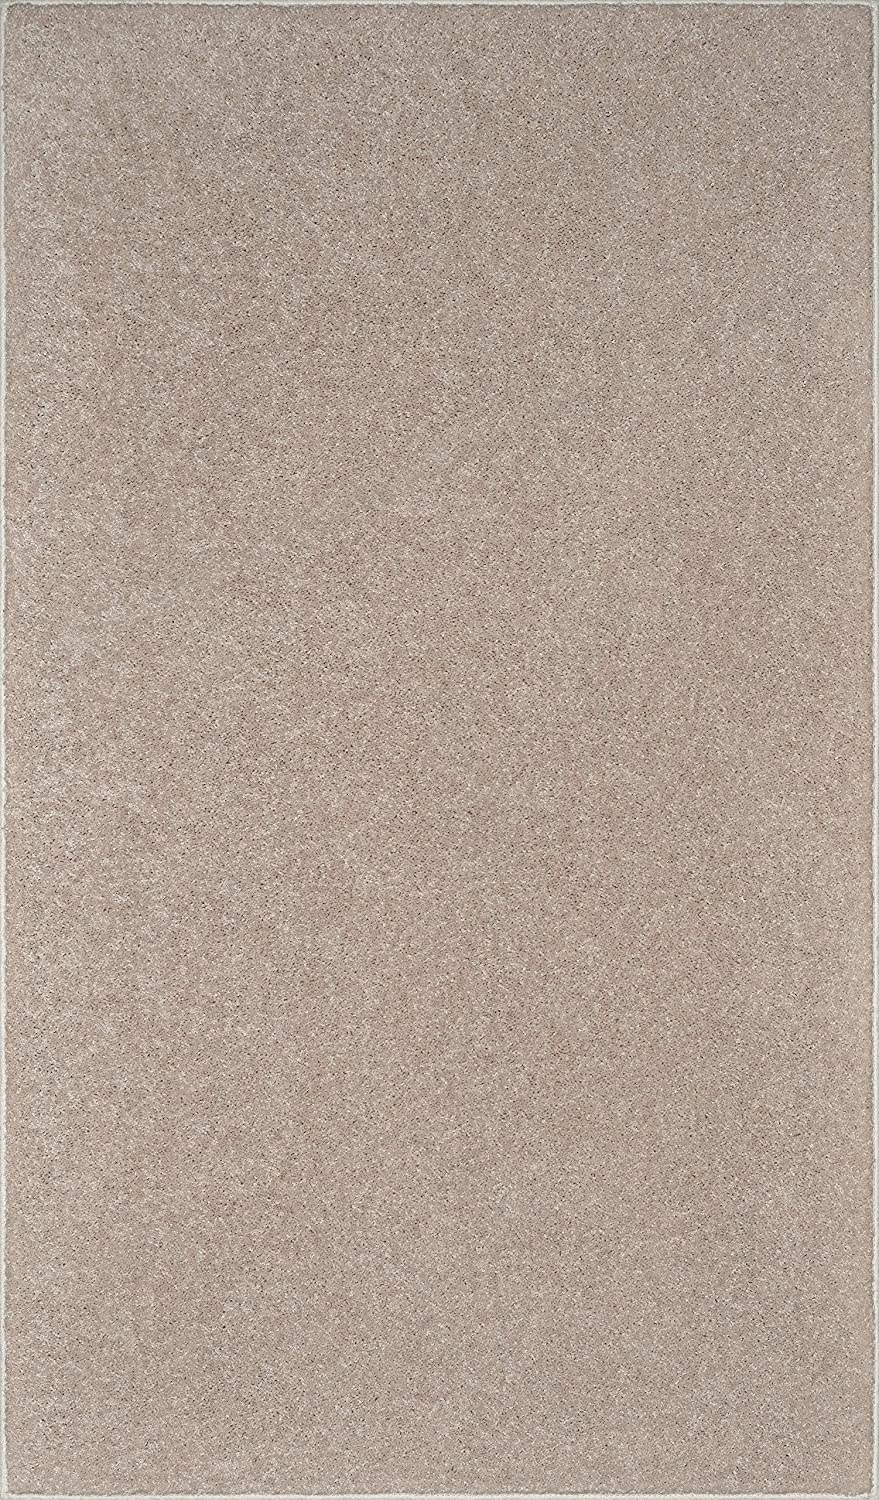 Trust Popular shop is the lowest price challenge Bright House Area Rug Color Solid